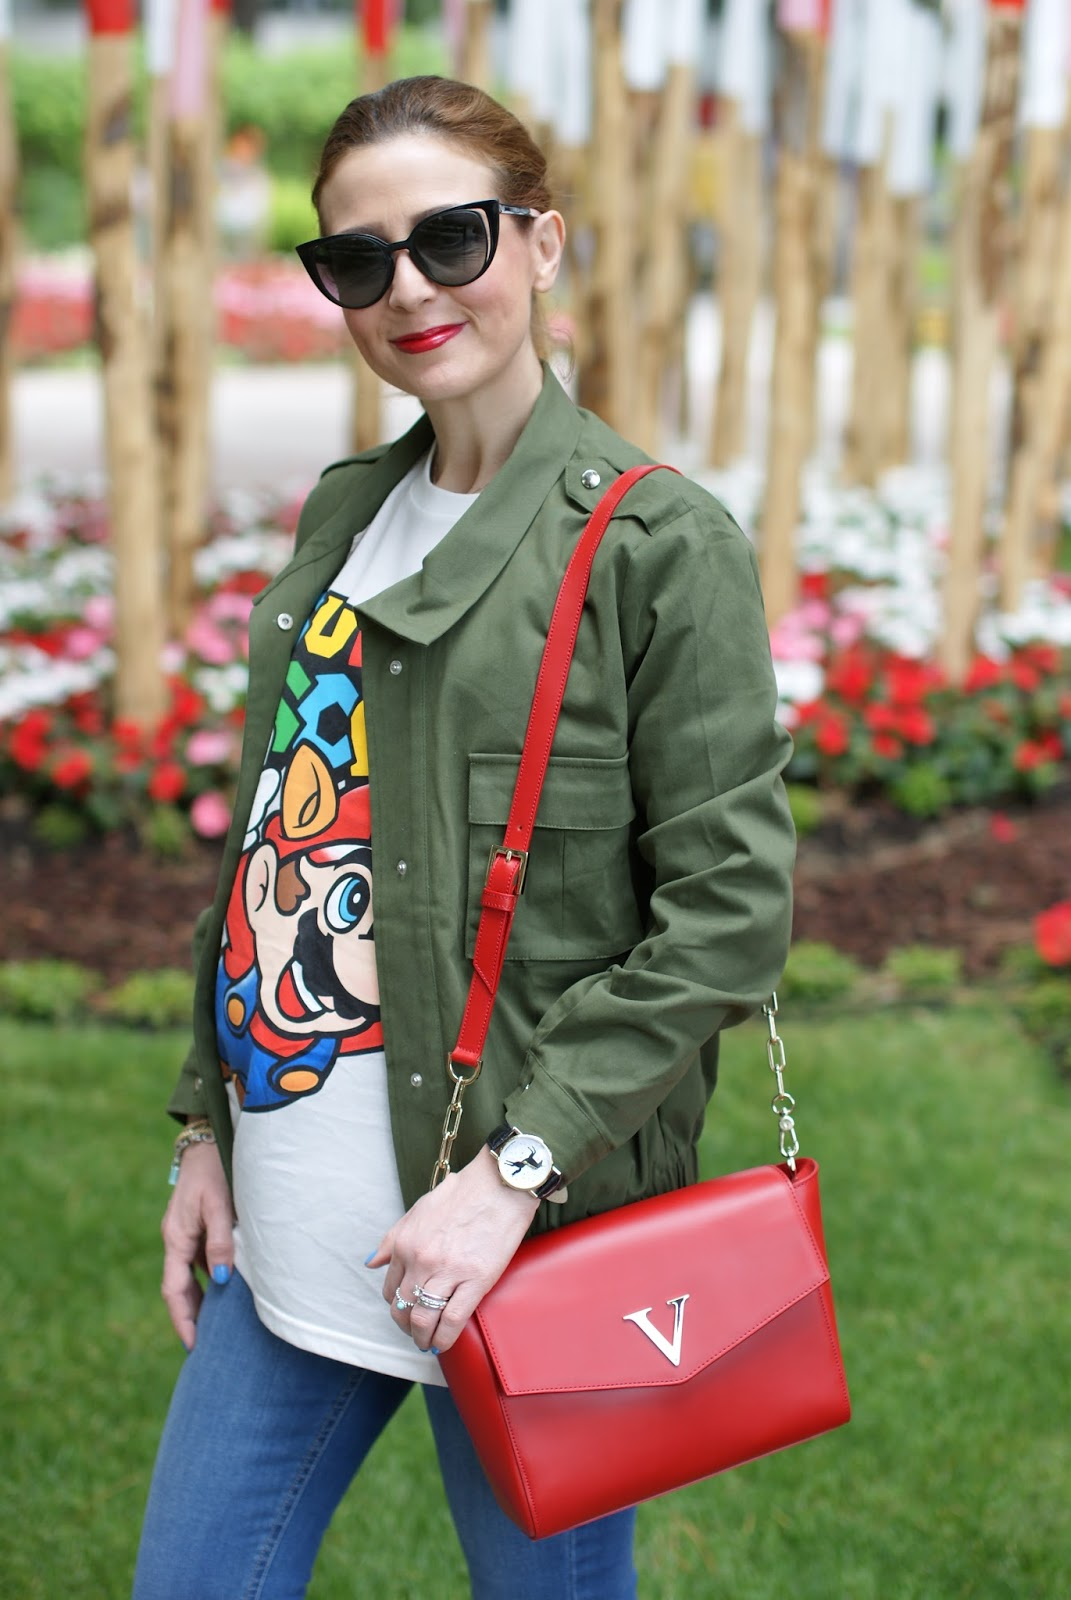 Moschino Super Moschino t-shirt with Super Mario bros, borsa Vittorio Virgili on Fashion and Cookies fashion blog, fashion blogger style